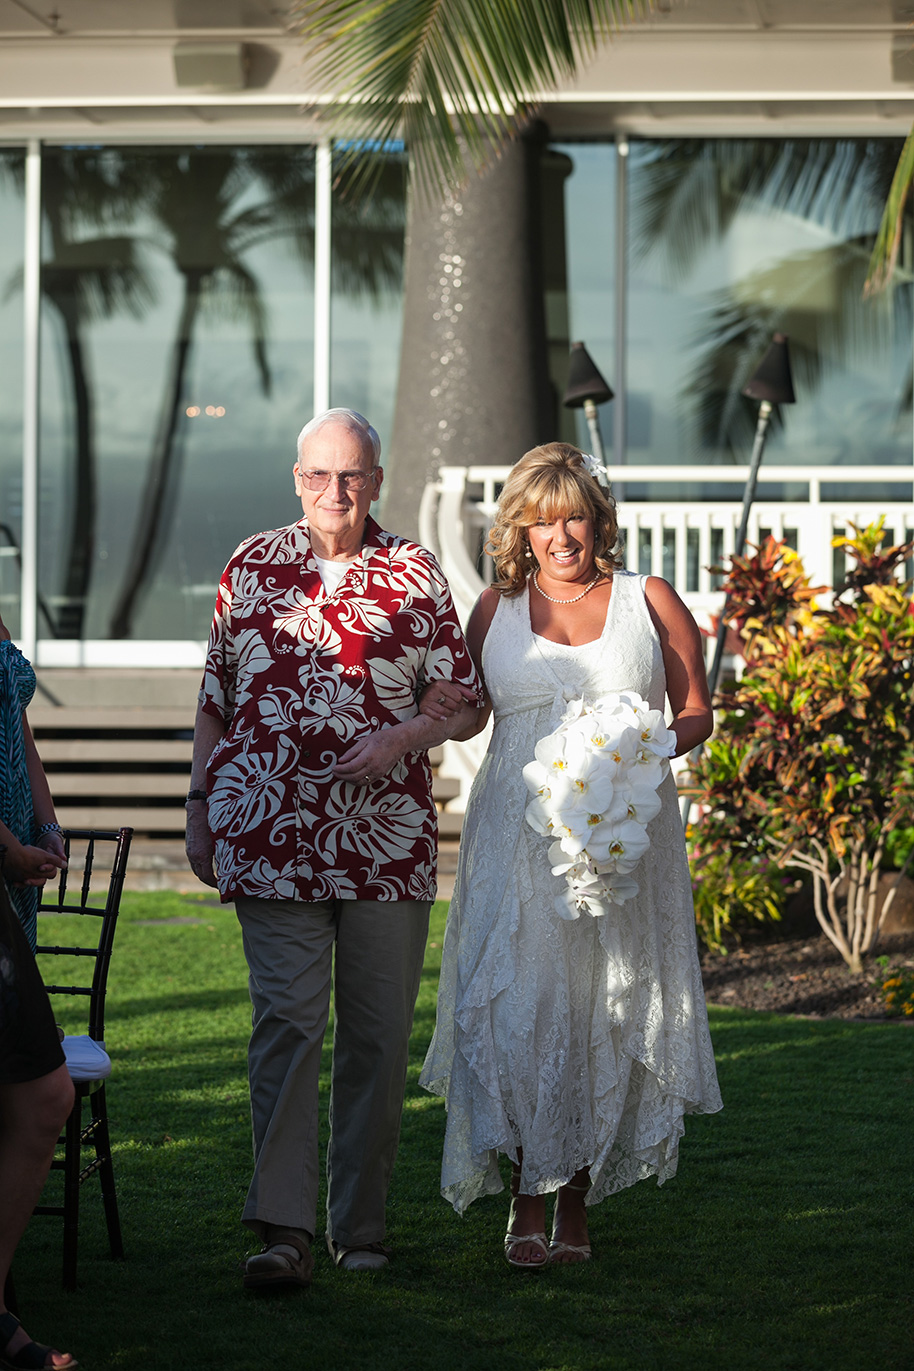 Maui-Beachside-Wedding-042916-9